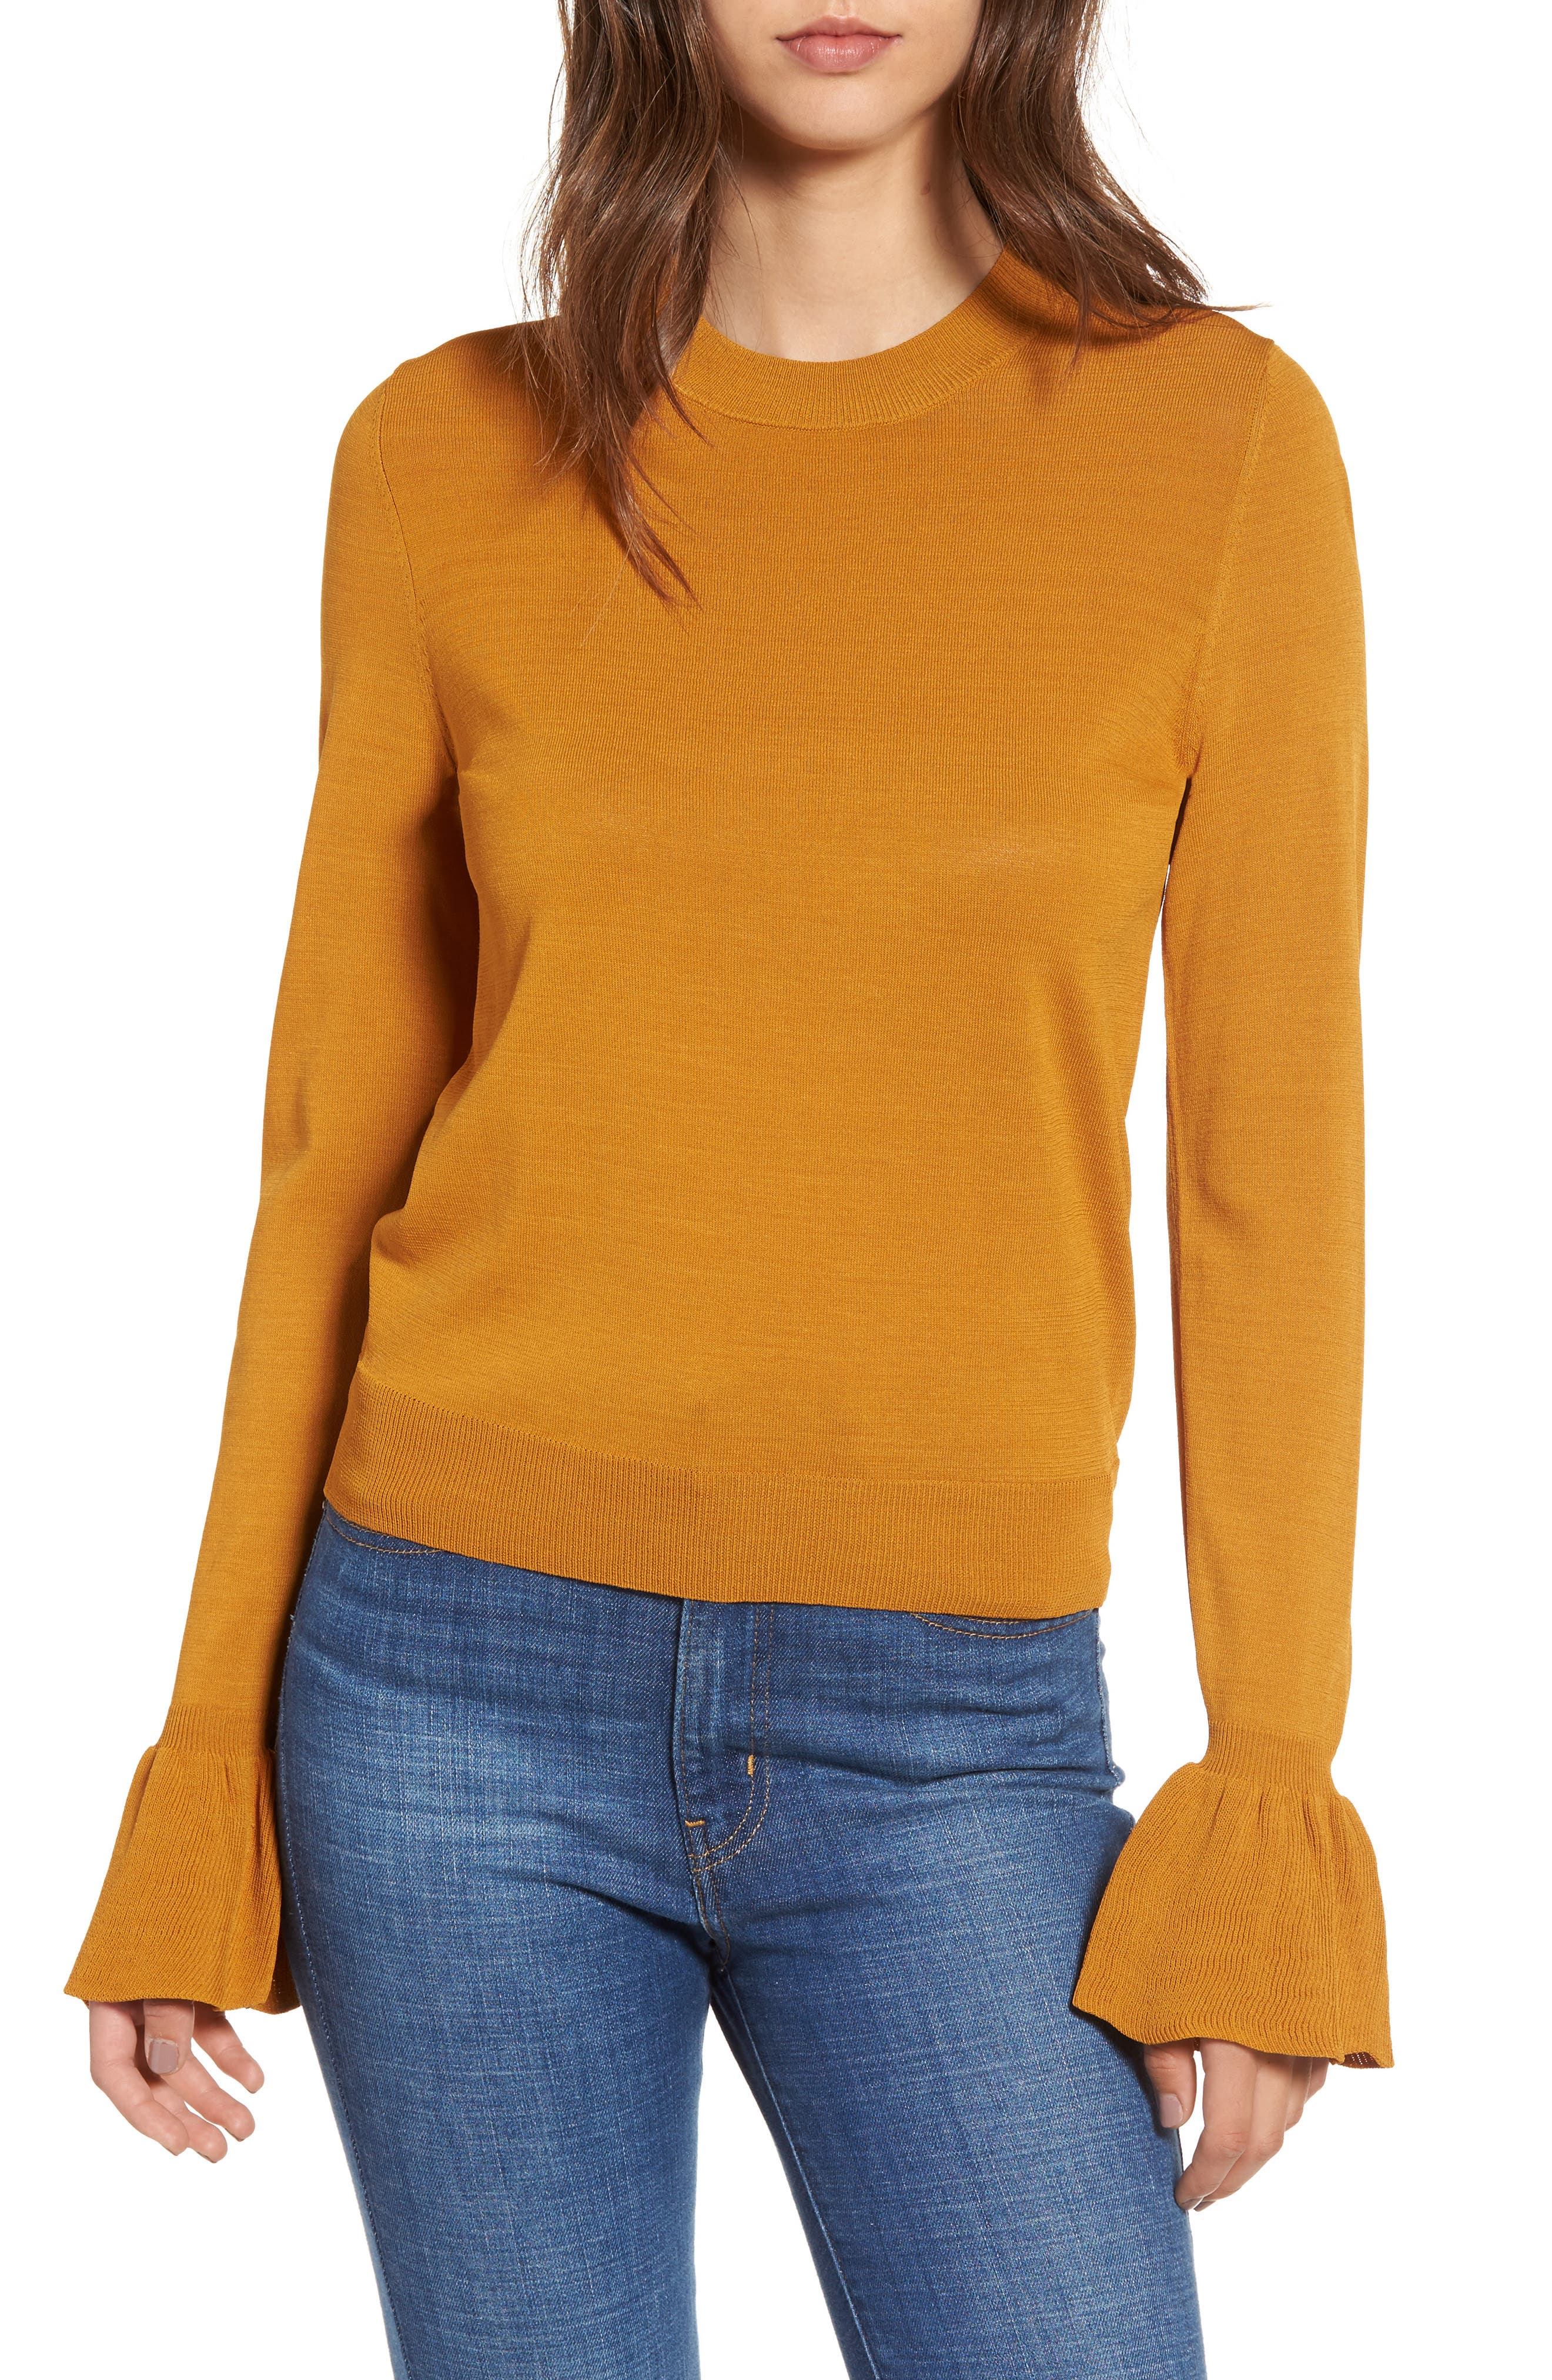 Main Image - Leith Flare Cuff Sweater